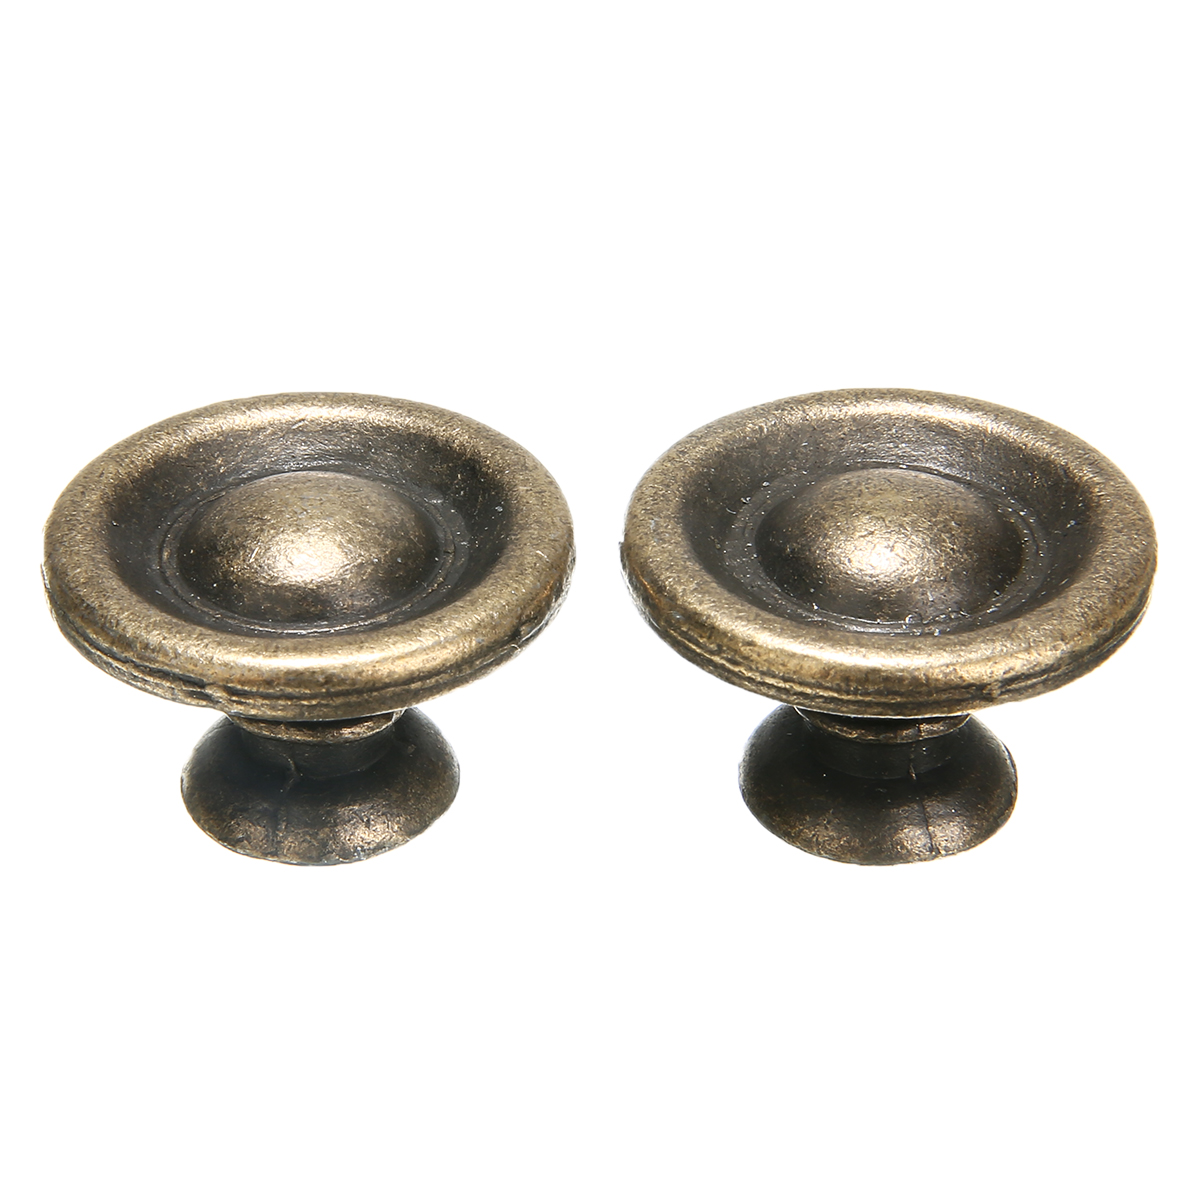 10pcs Furniture Knobs Antique Brass Handles Cupboard Wardrobe  Doors Cabinet Drawers Cabinet Hardware Knobs